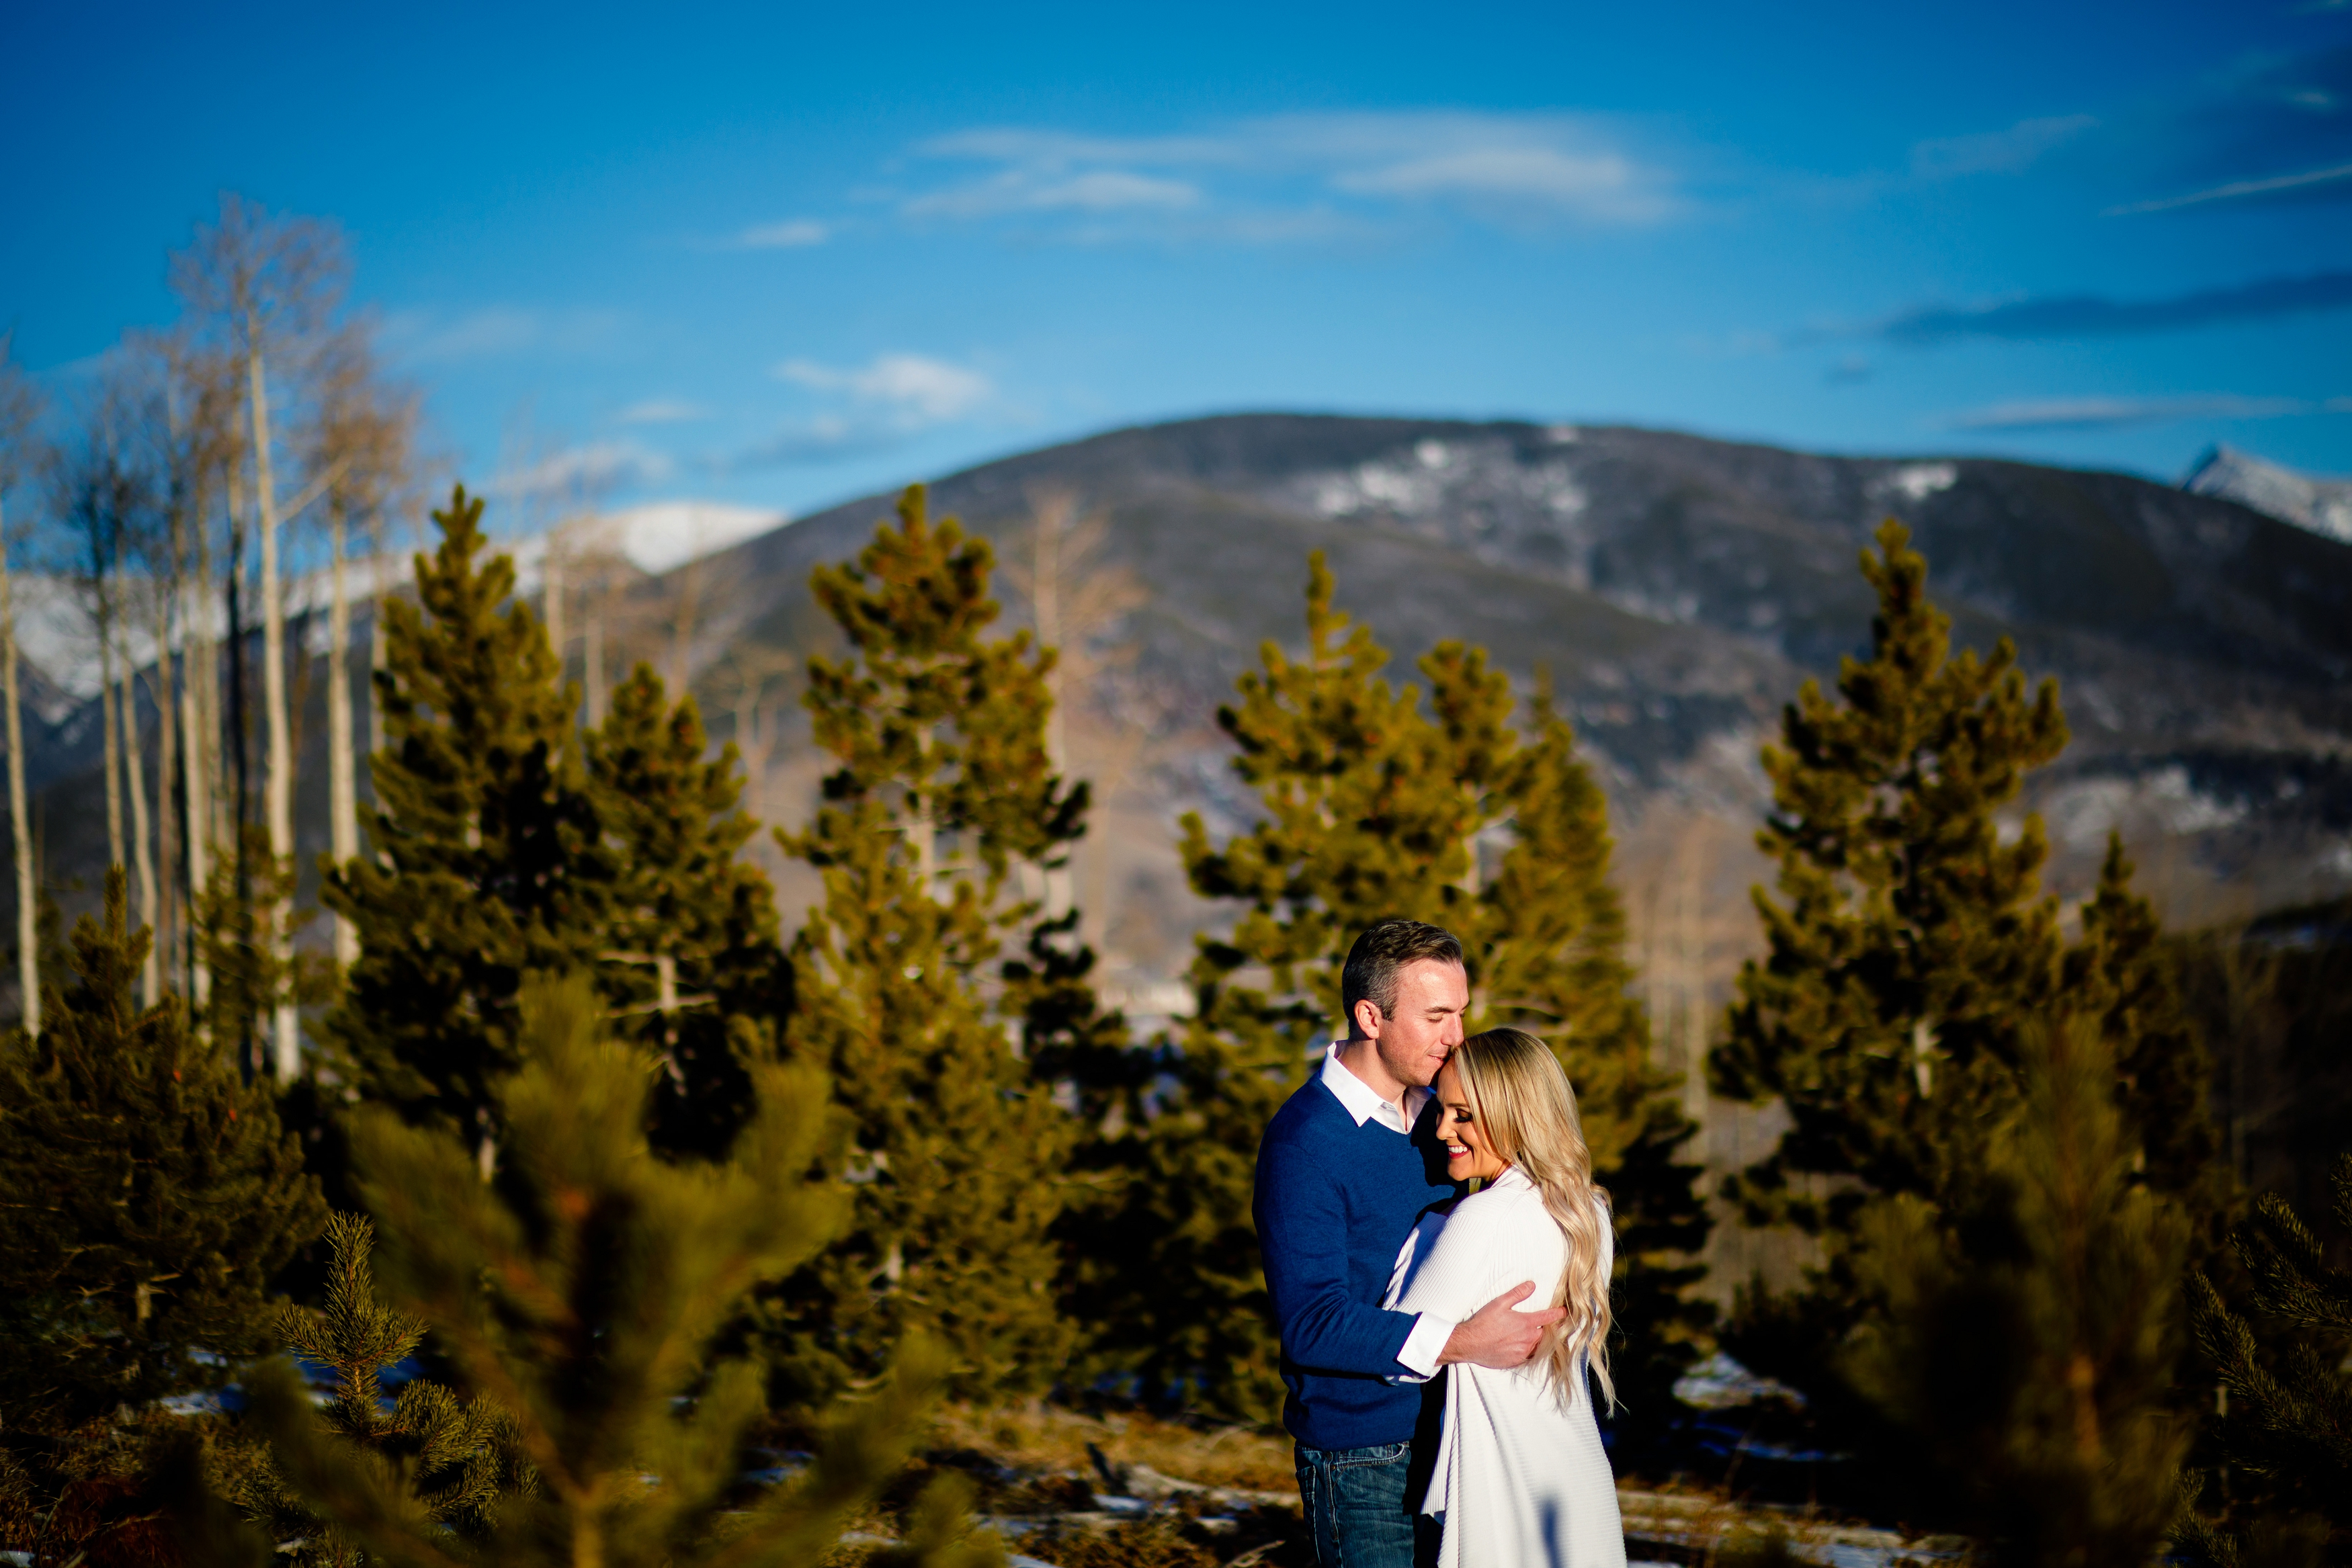 Beautiful couple posing in the warm sun during their engagement photo session in Silverthorne, CO.